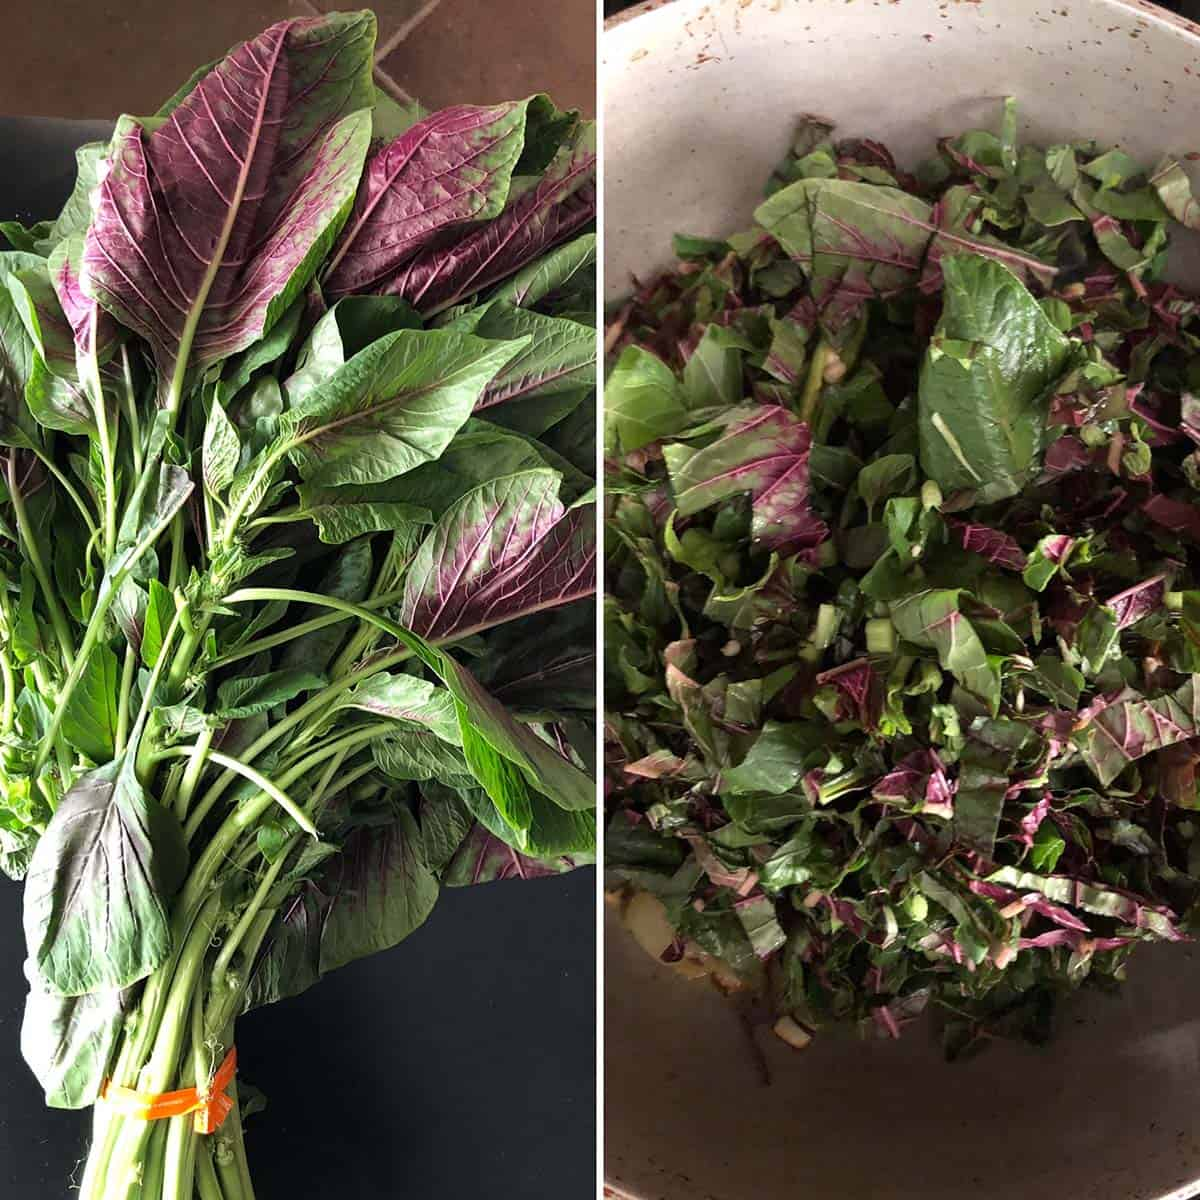 Side by side photos of Bunch of Amaranth greens and chopped greens